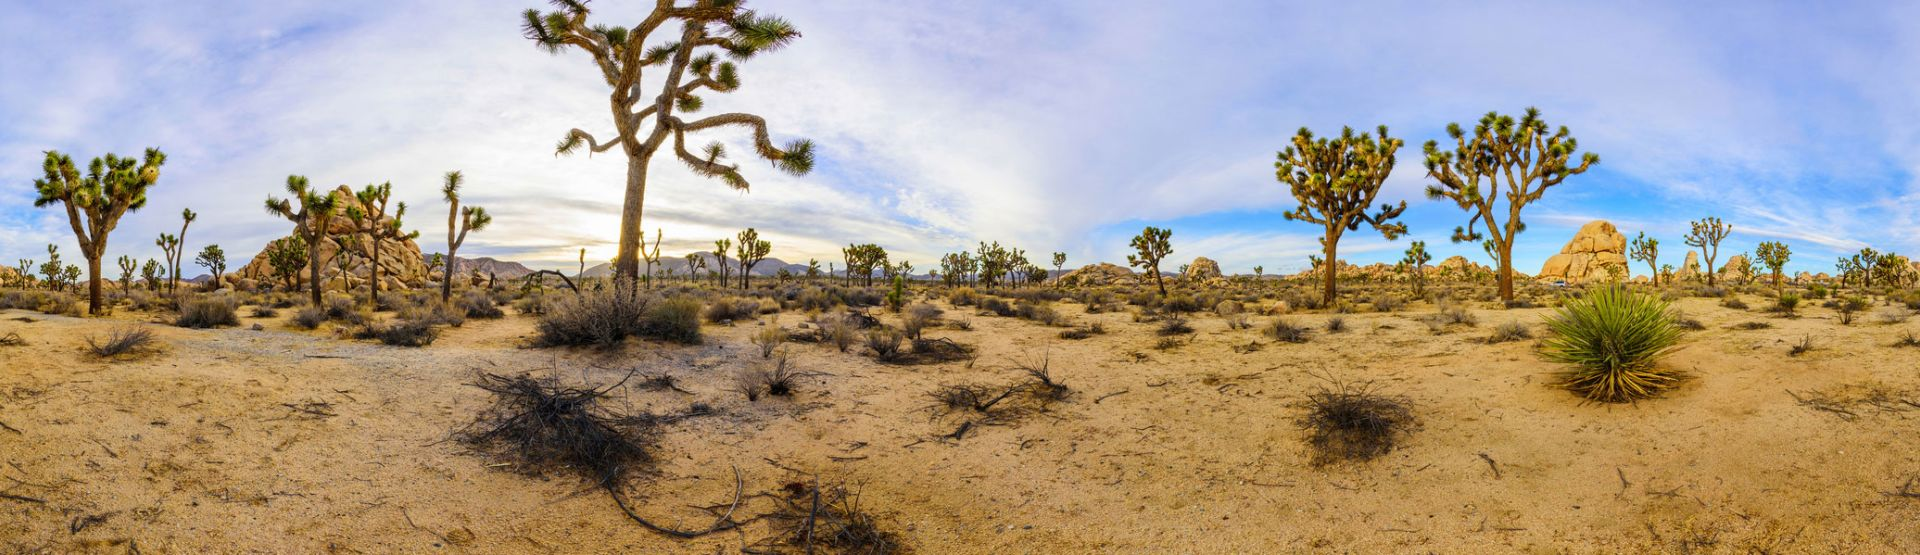 Visit Joshua Tree National Park